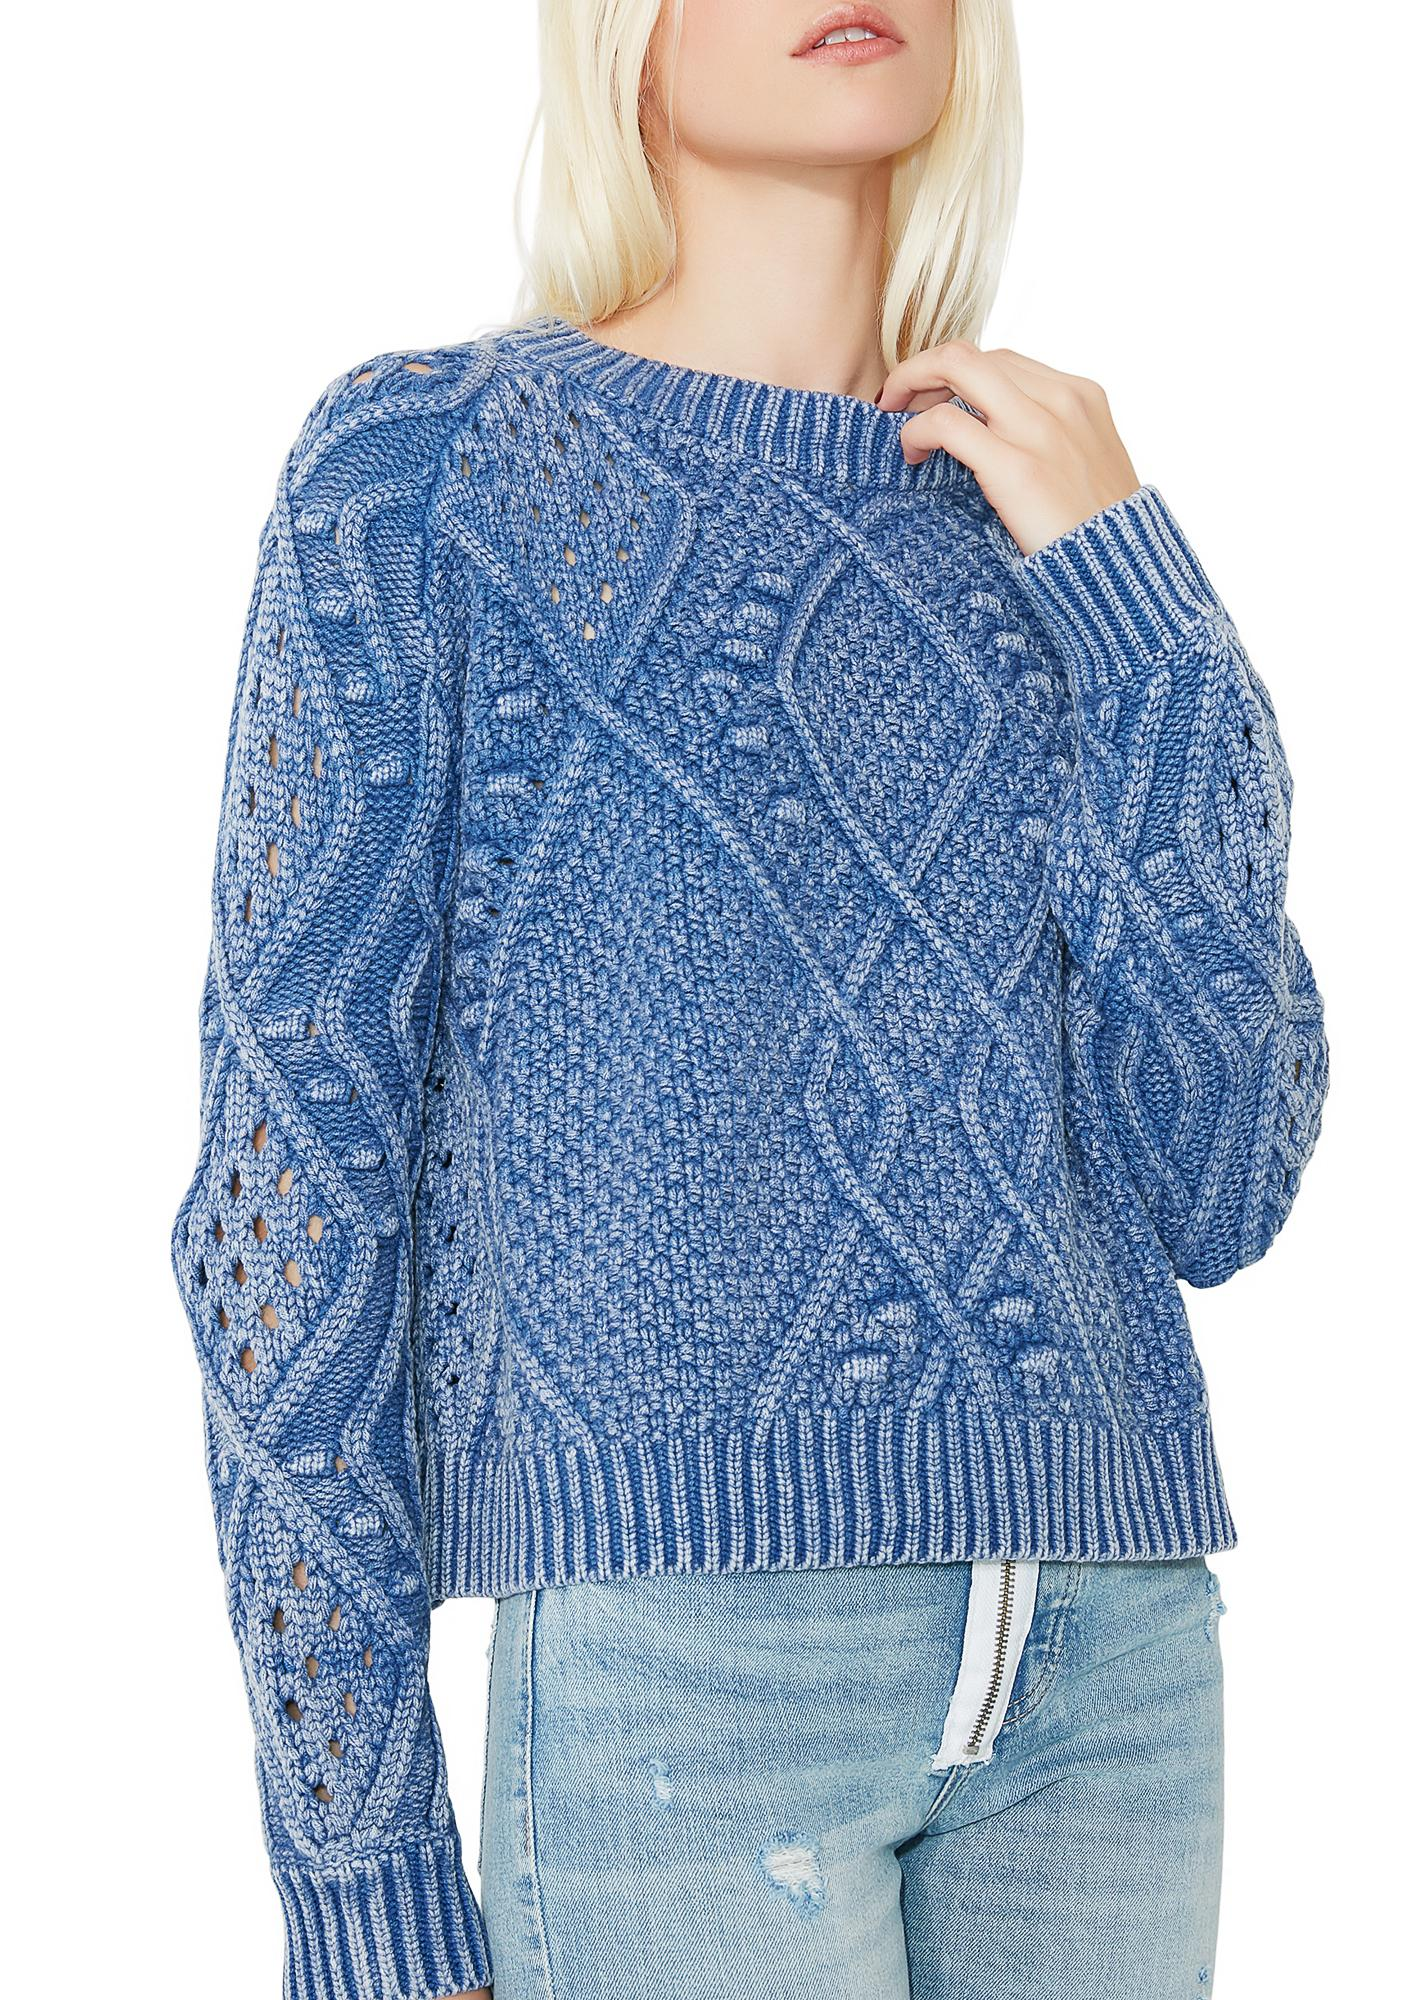 Thick Intarsia Blue Knit Sweater | Dolls Kill